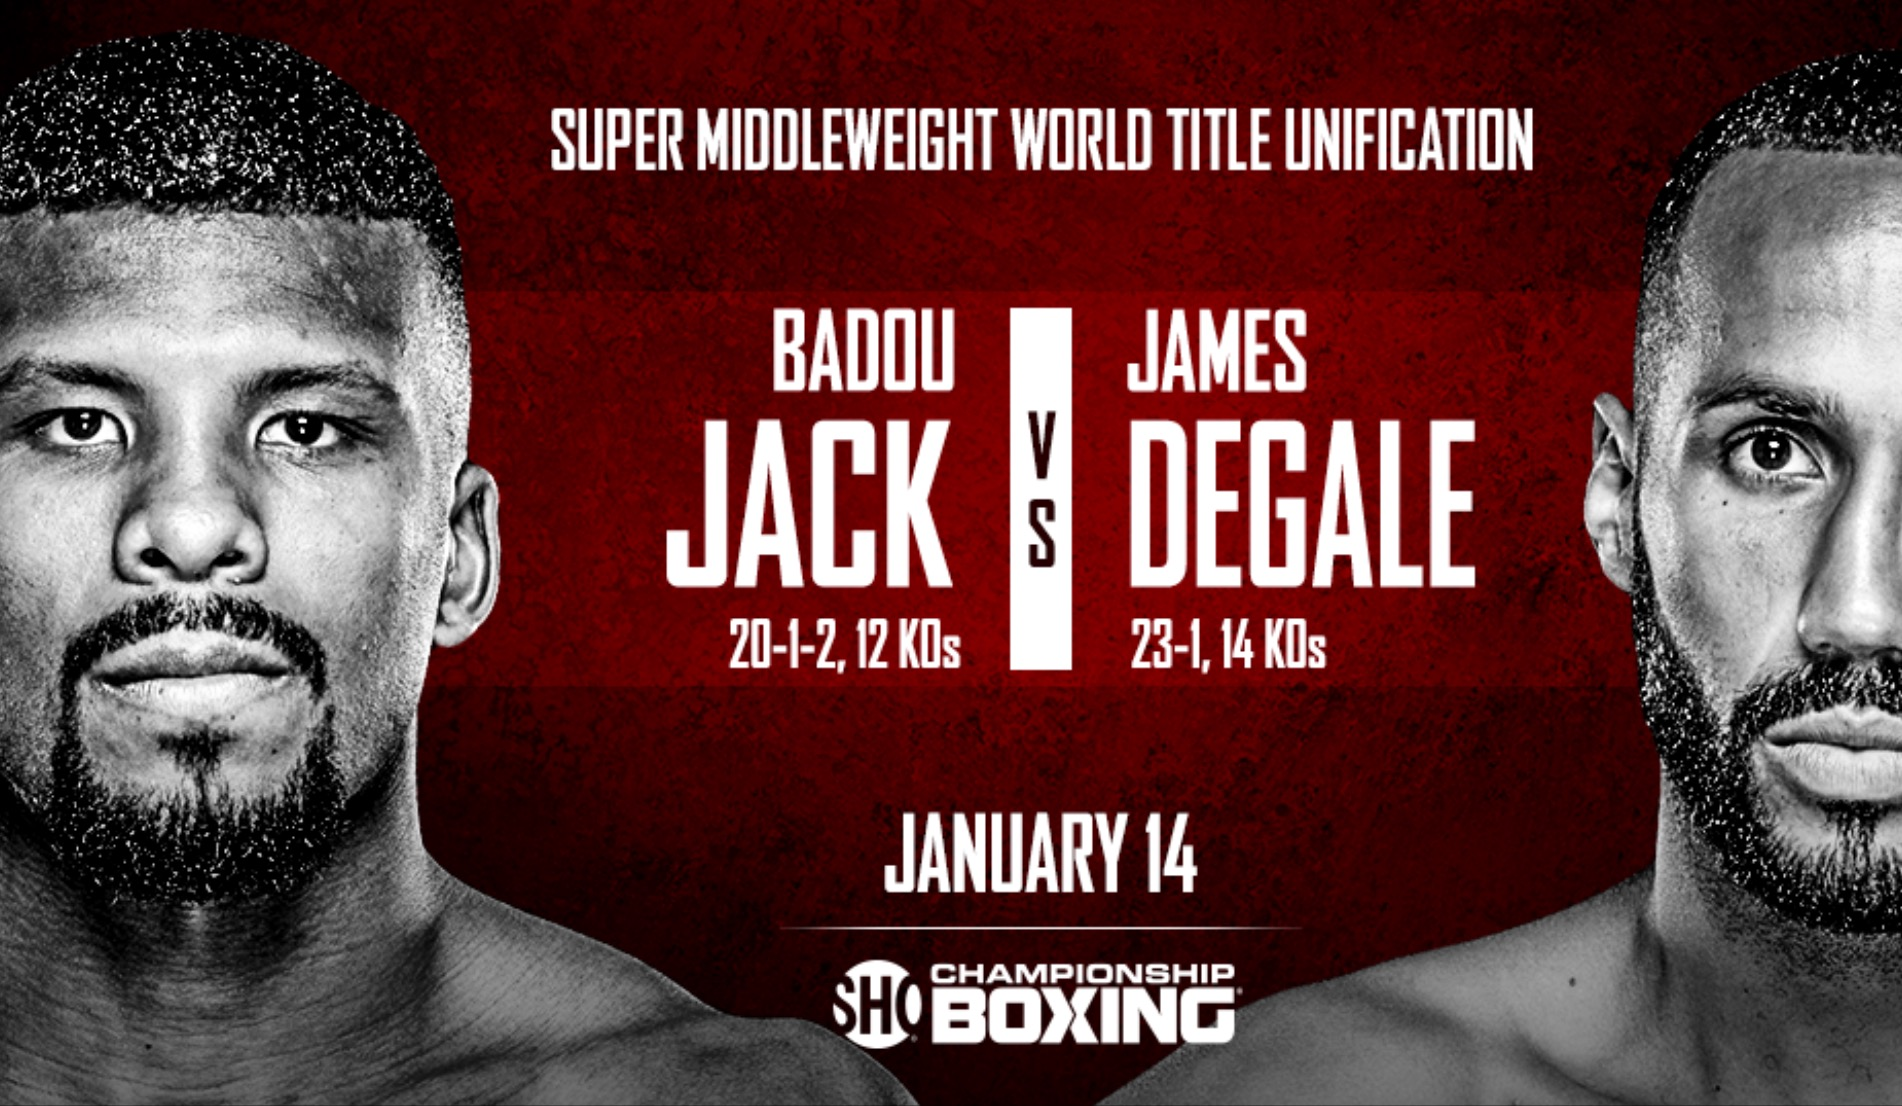 Badou Jack vs. James Degale will take place on January 14th. Photo: Showtime Sports